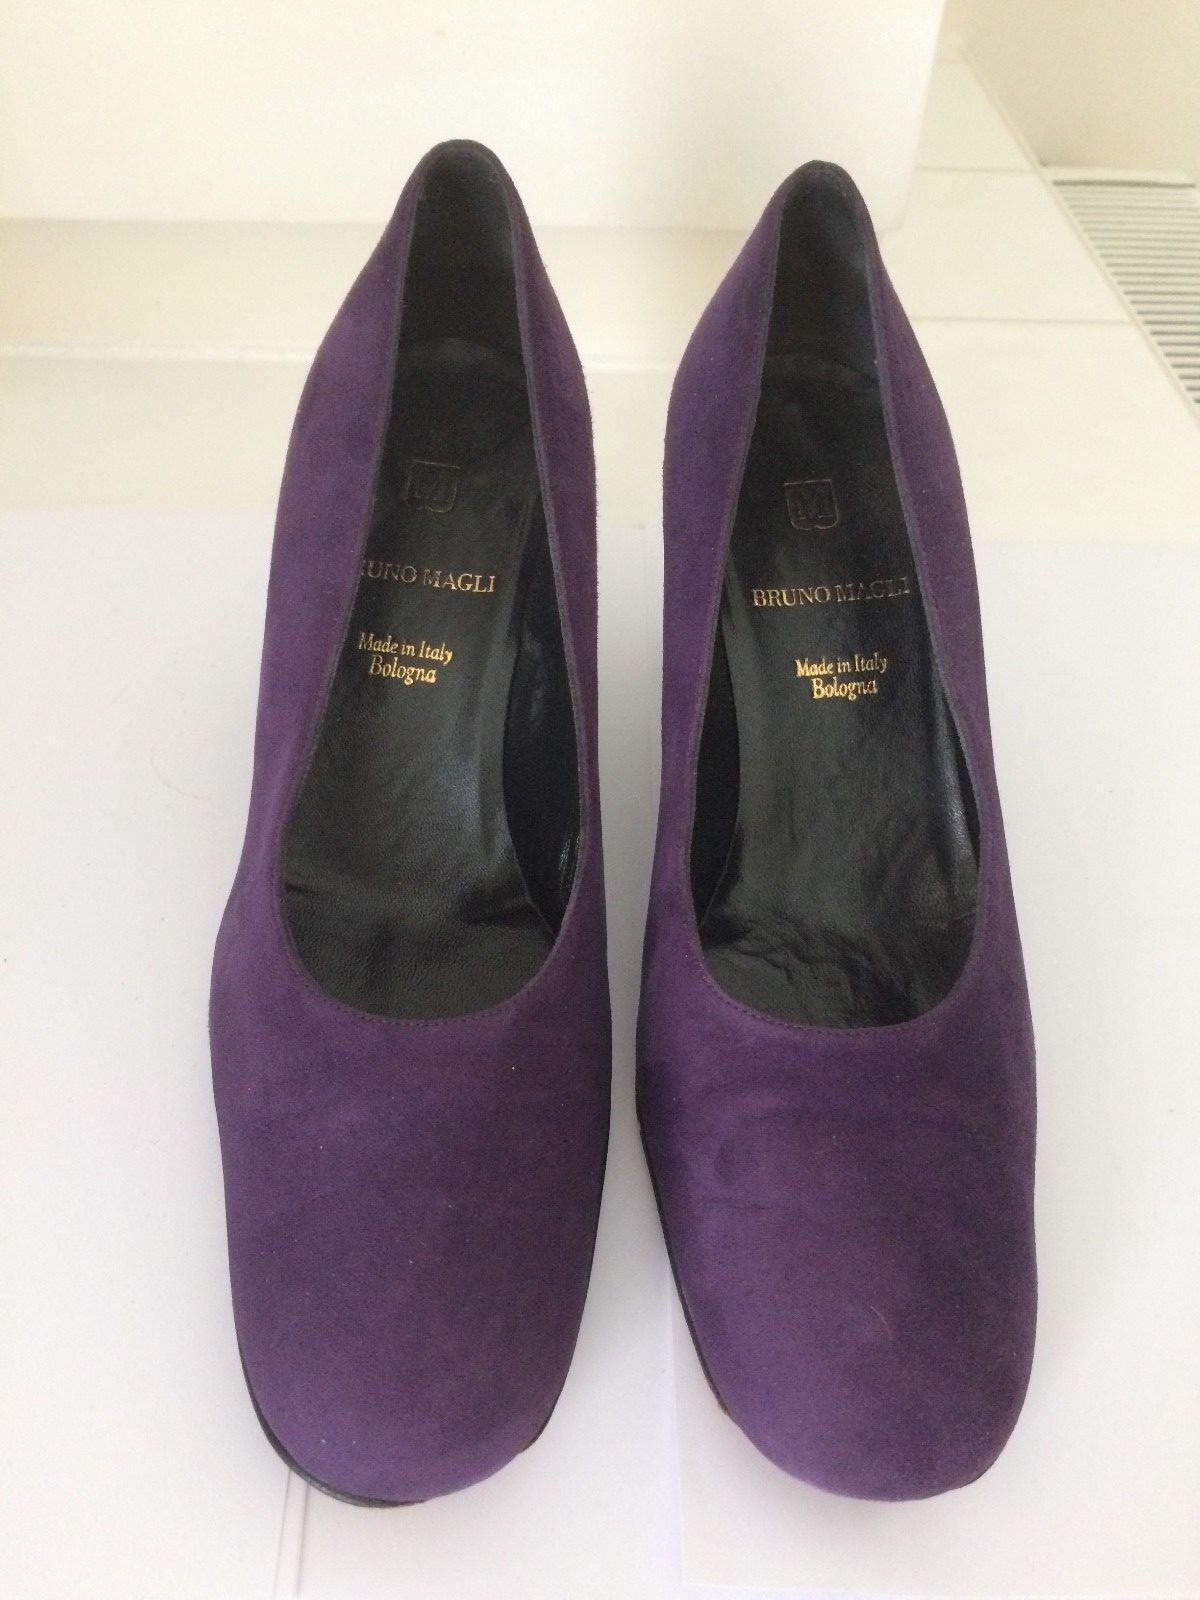 Bruno Magli Suede Purple Pumps, Size Size Size 37,5 (UK 4,5) 6ea995